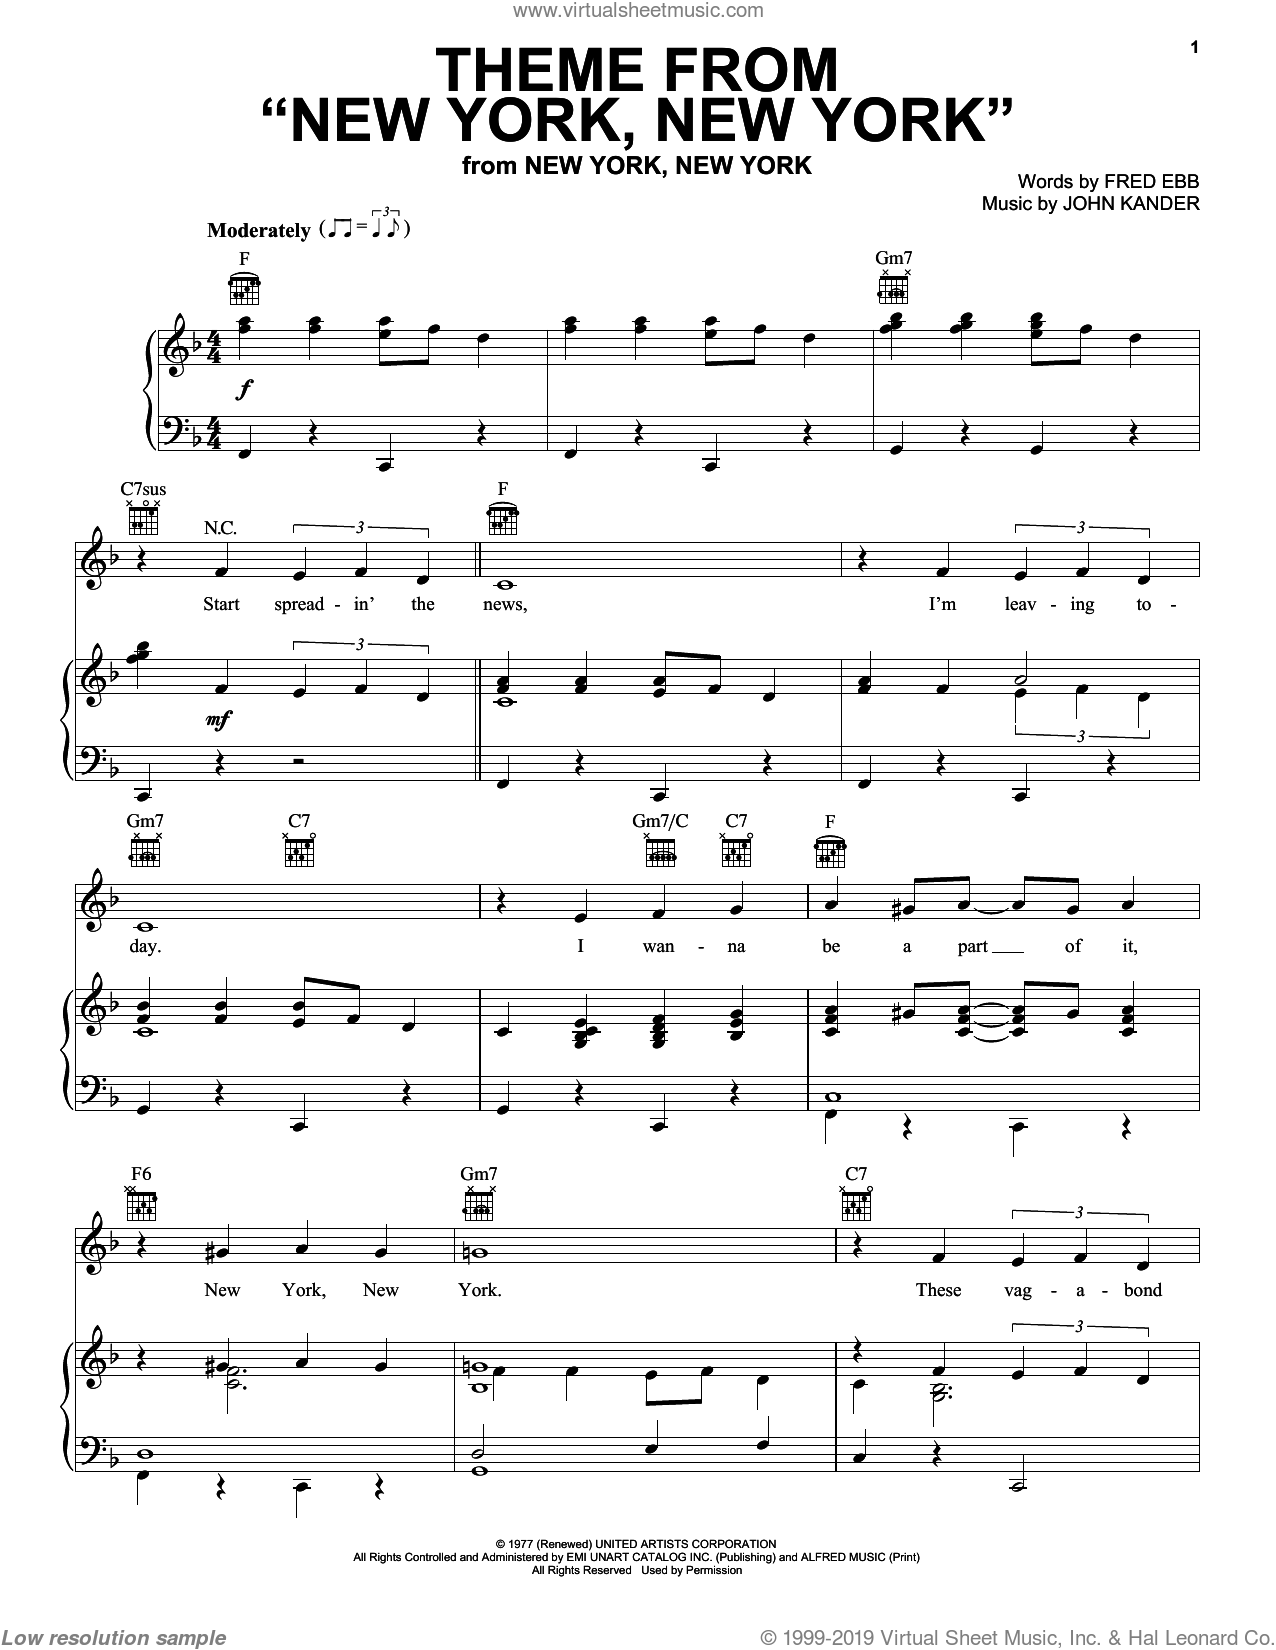 Theme From 'New York, New York' sheet music for voice, piano or guitar by Frank Sinatra, Kander & Ebb, Liza Minnelli, Fred Ebb and John Kander, intermediate skill level